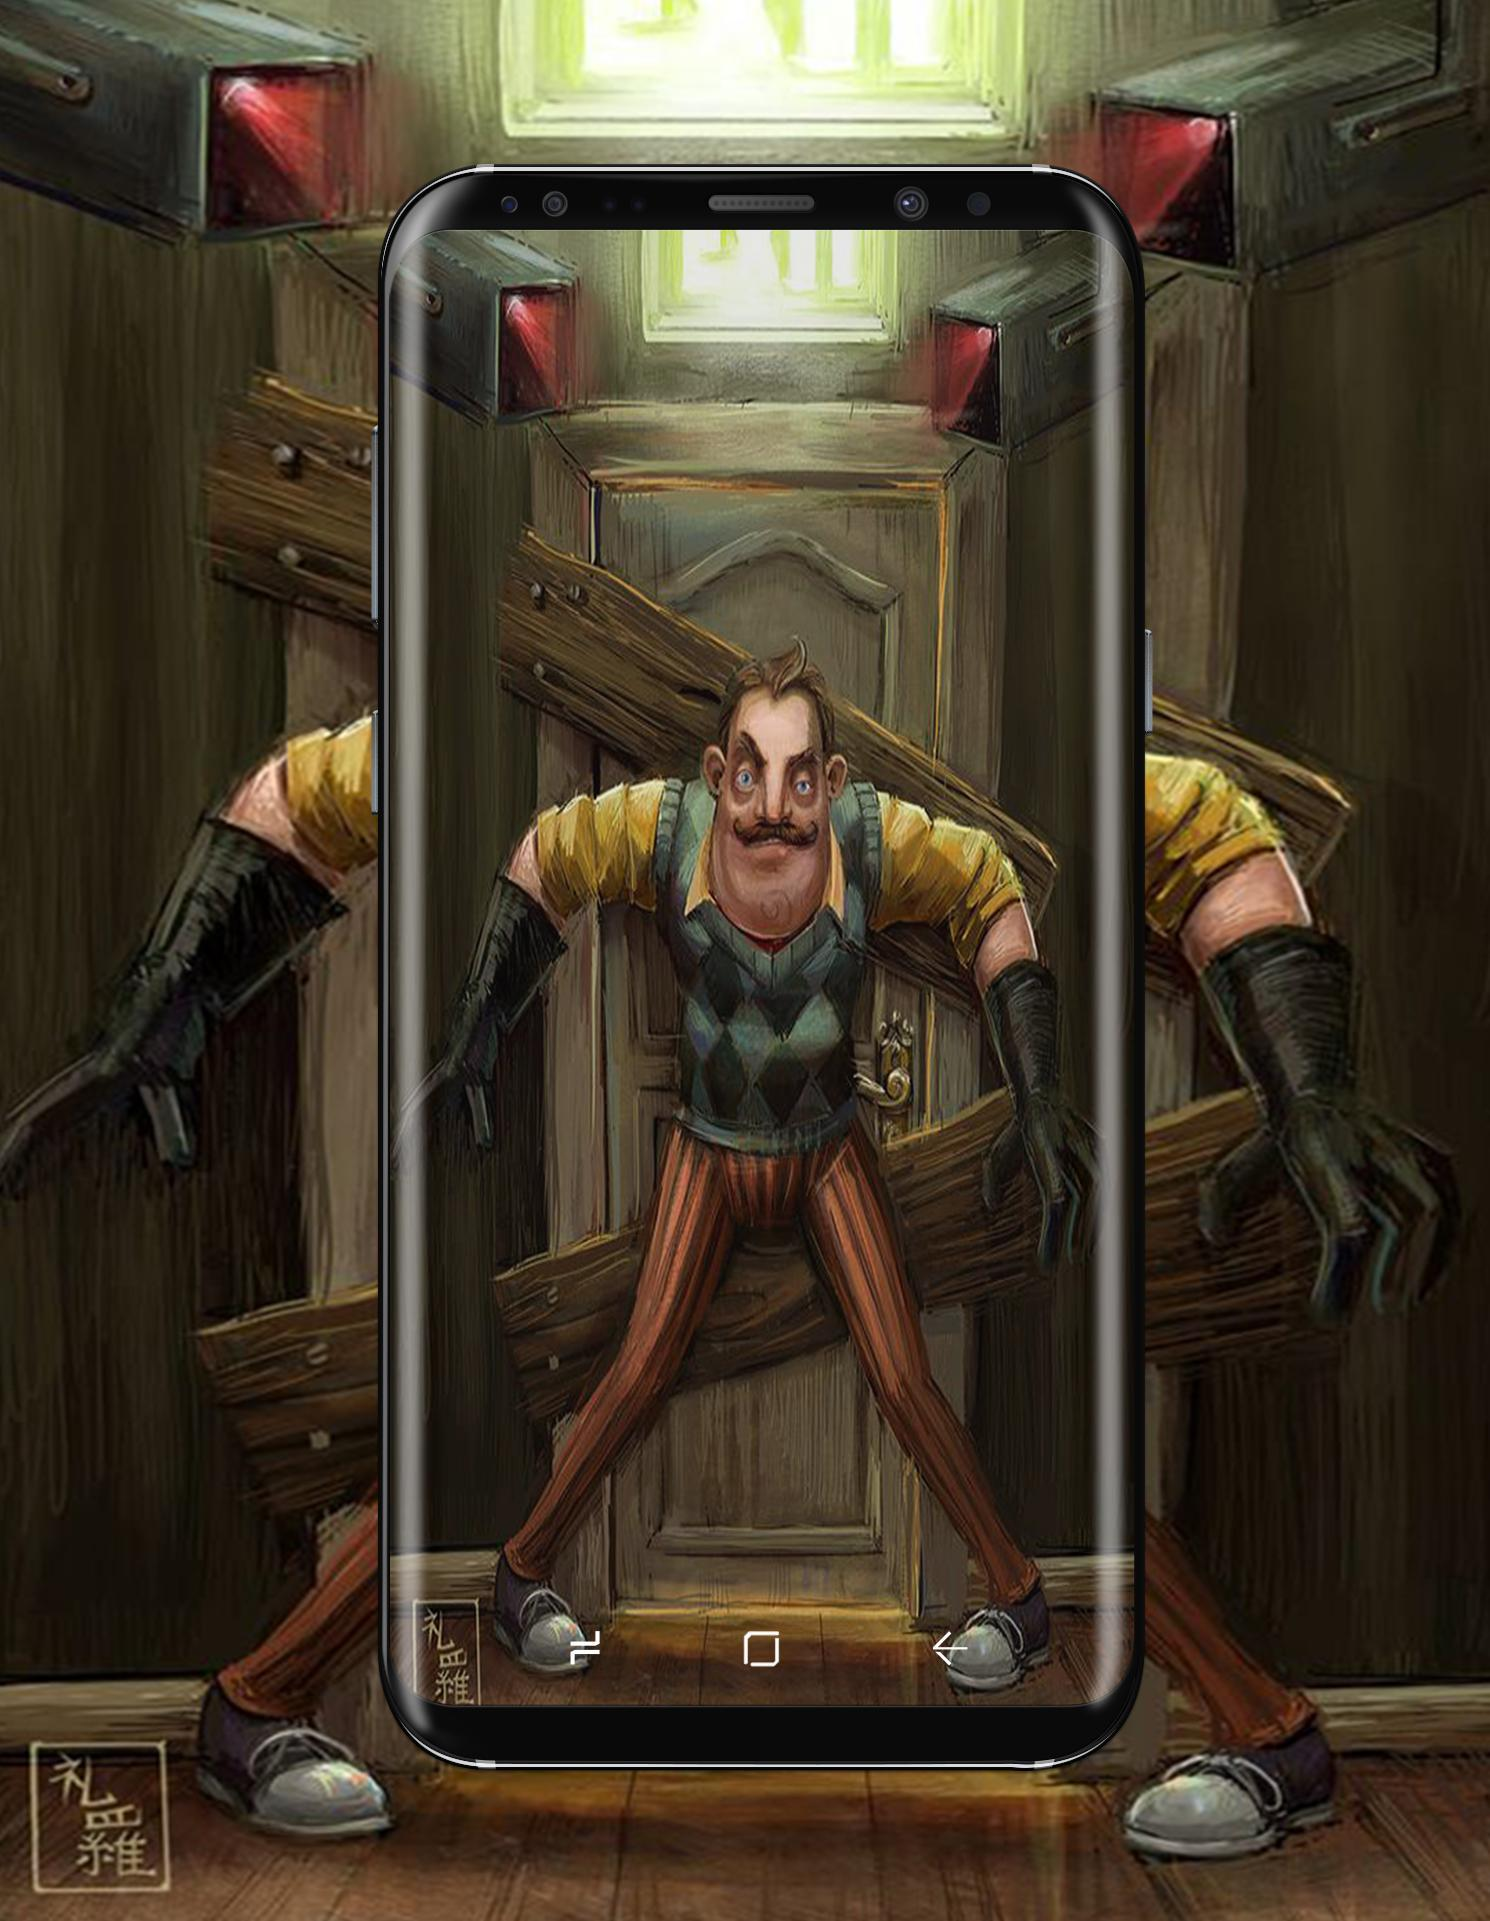 The Hello Neighbor Wallpaper for Android - APK Download